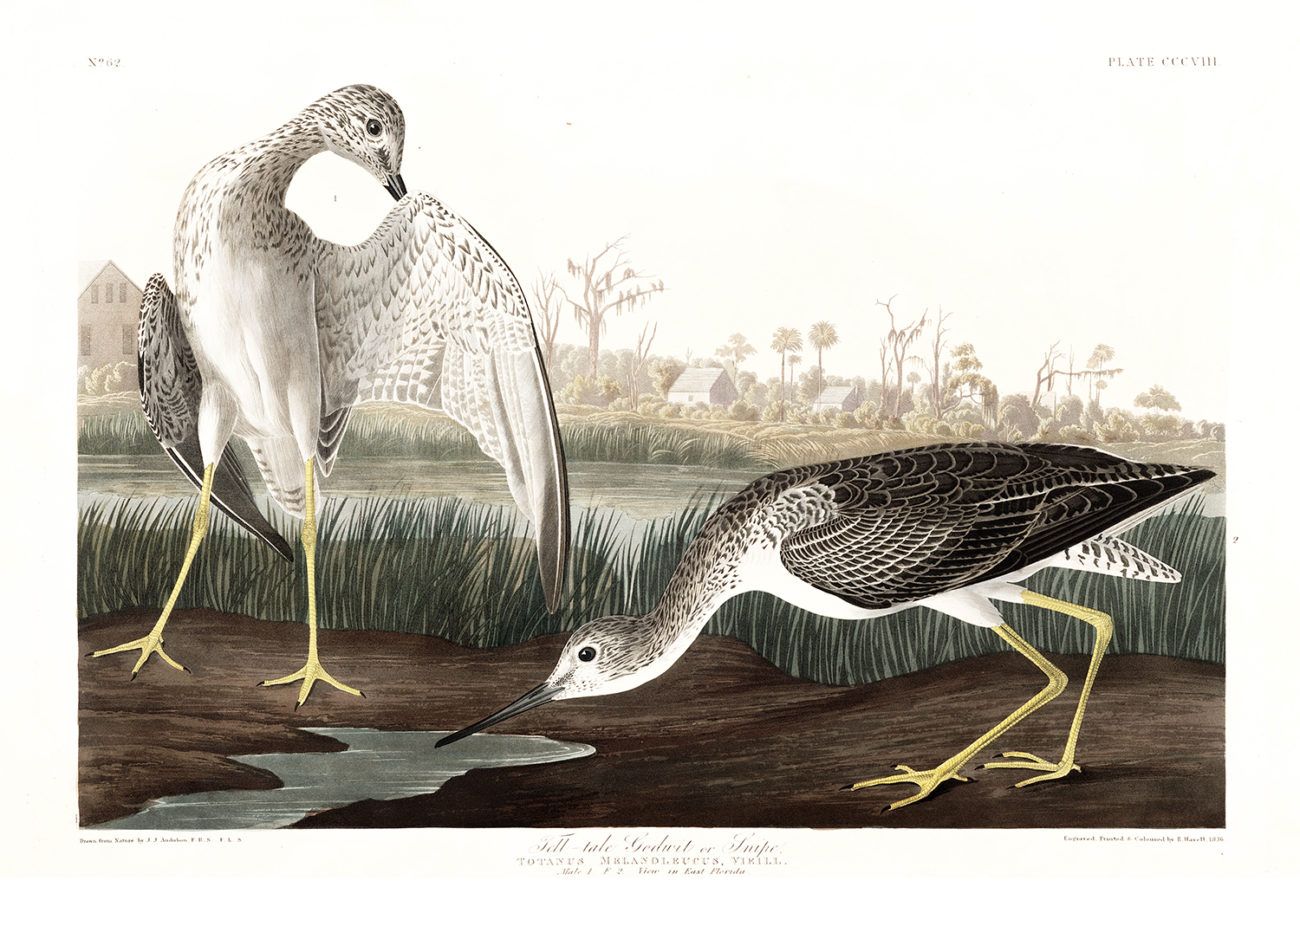 Plate 308 - Tell Tail Goodwit or Snipe